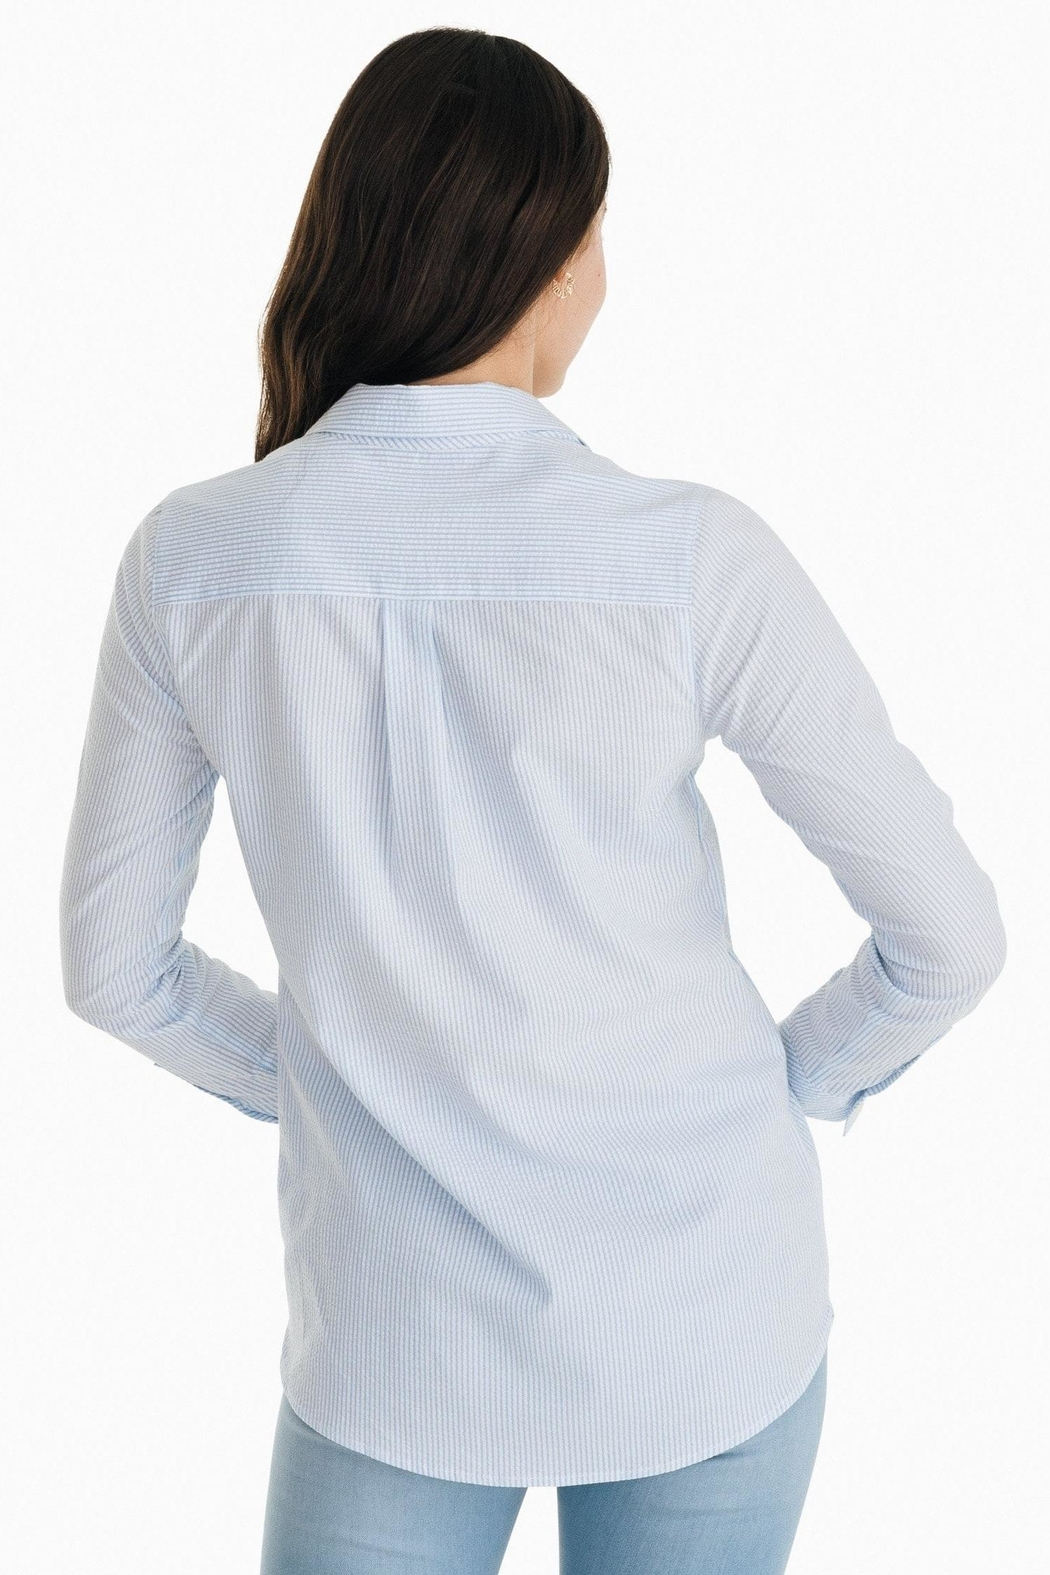 Southern Tide Kasey Seersucker Tunic-Popover - Front Full Image